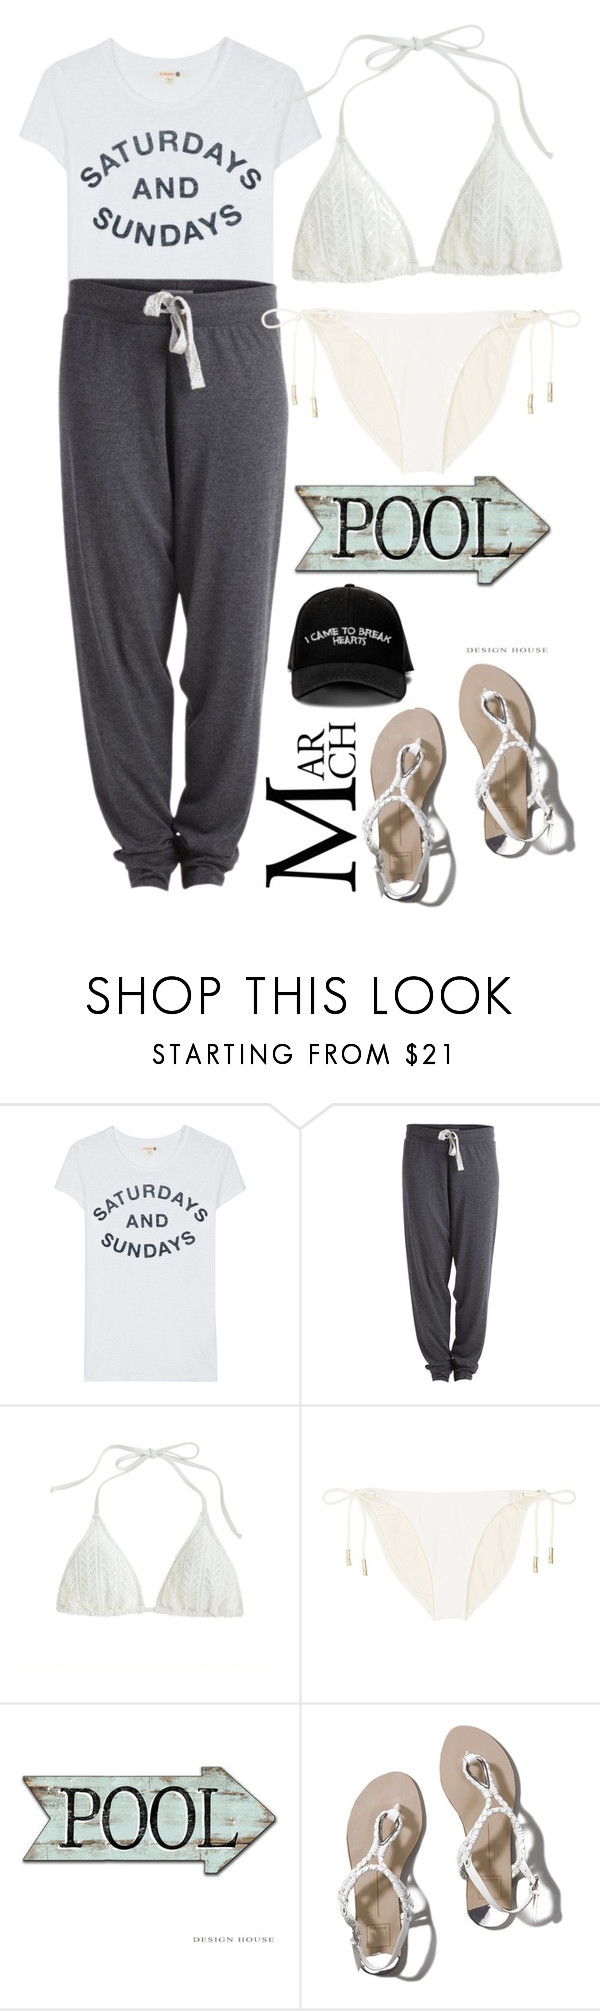 """""""Tan. Pool. Relax"""" by lseed87 ❤ liked on Polyvore featuring Sundry, Pieces, J.Crew, ViX, Abercrombie & Fitch and Manolo Blahnik"""